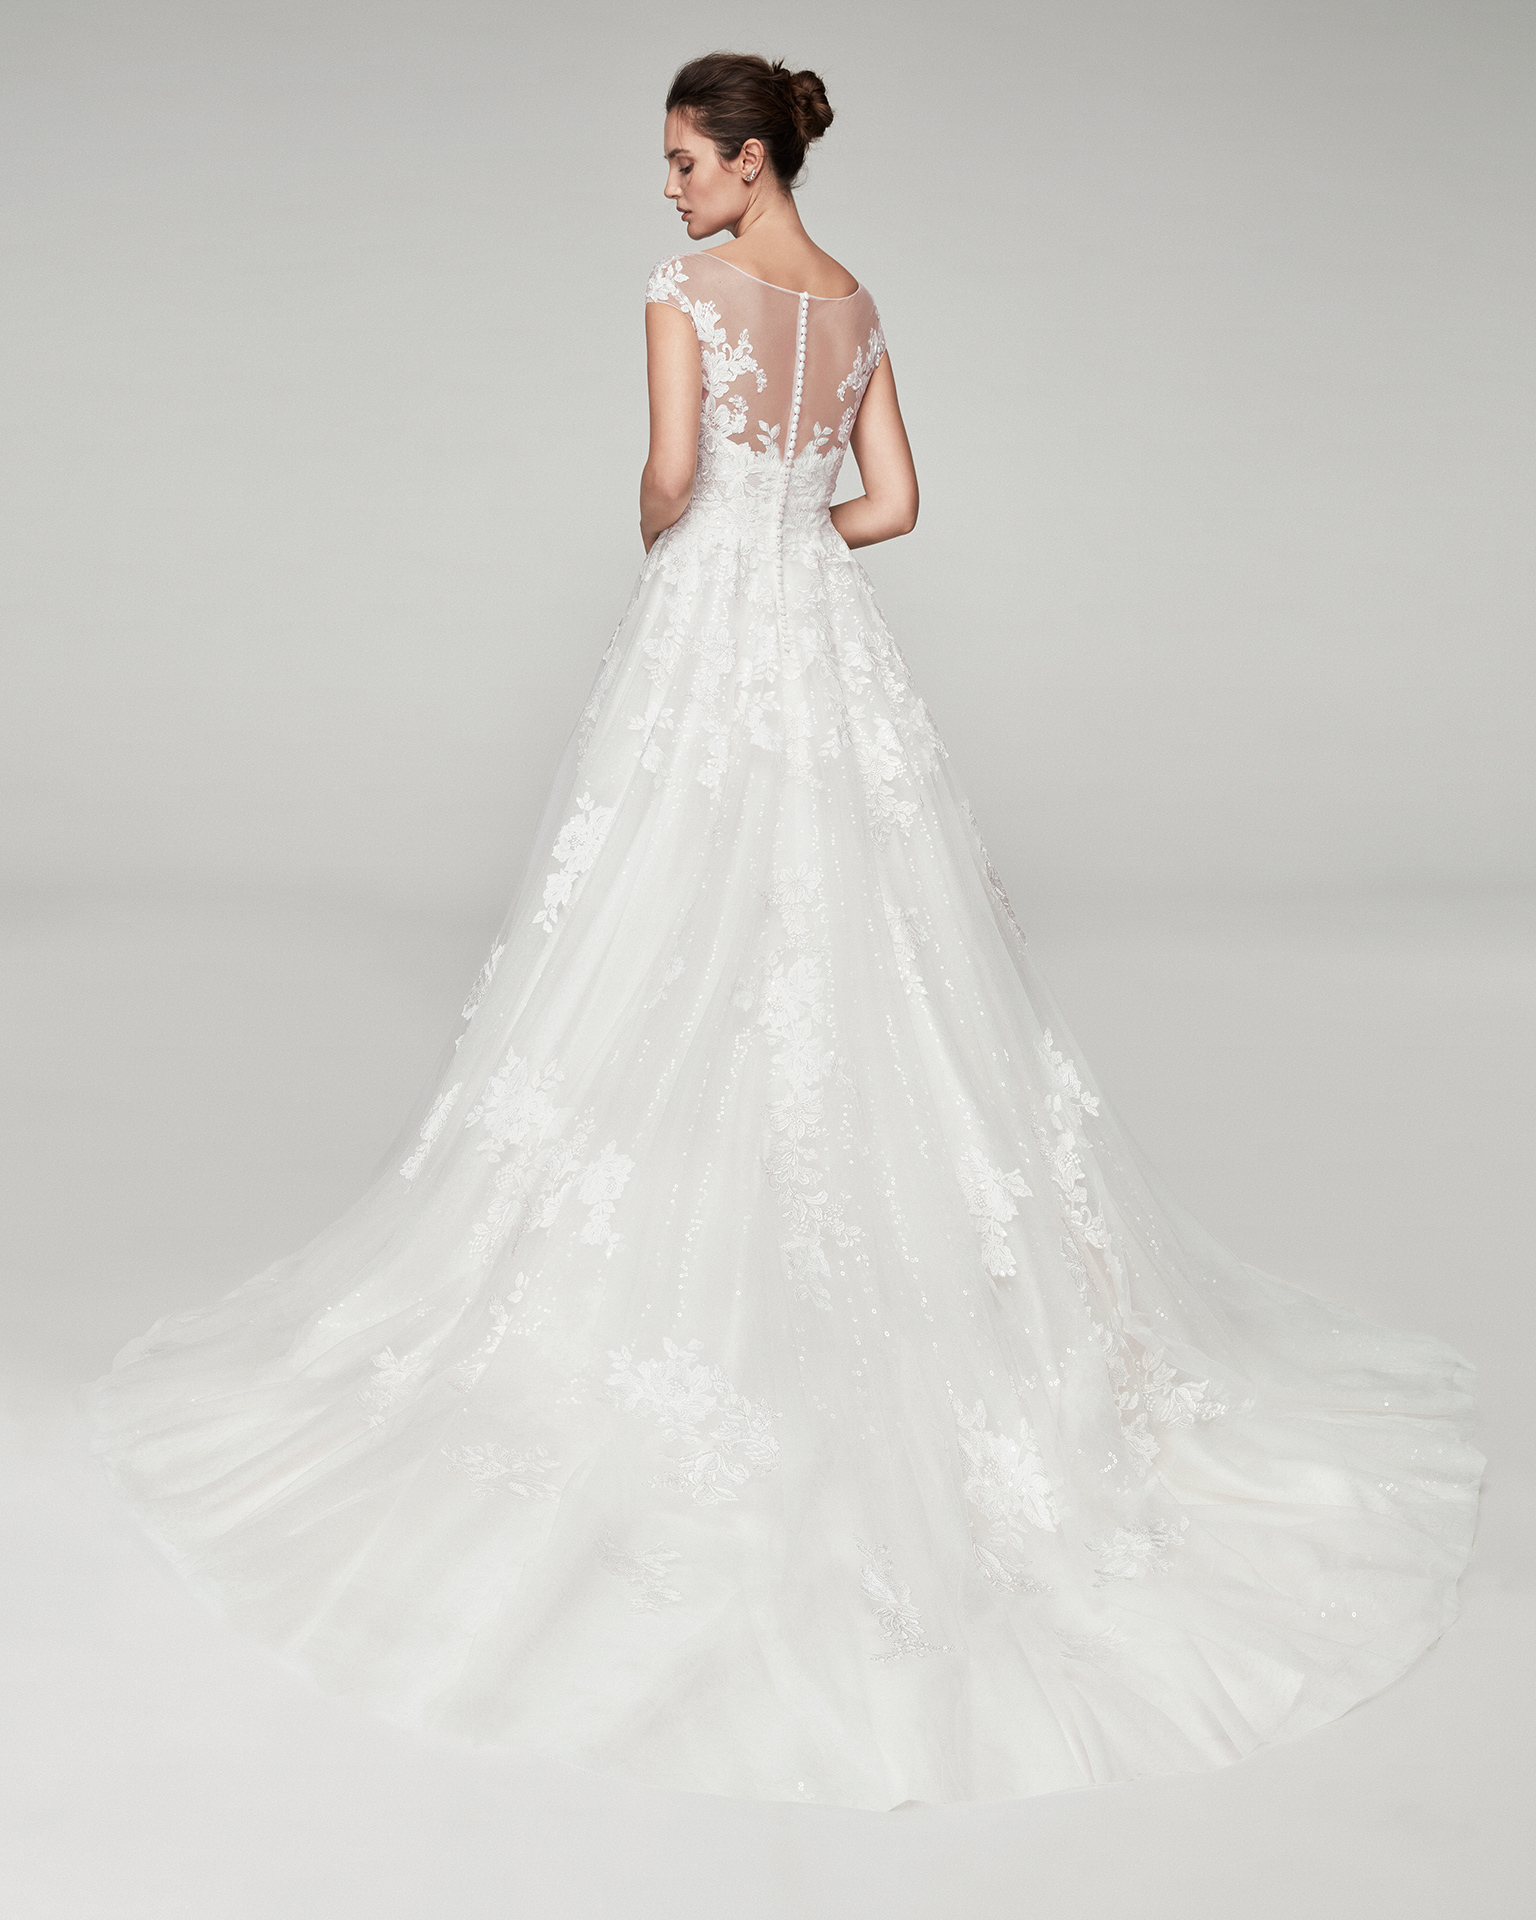 Romantic tulle and beaded lace wedding dress. With V-neckline and tulle back. Skirt with lace appliqués. Available in natural. 2019 ALMA_NOVIA Collection.